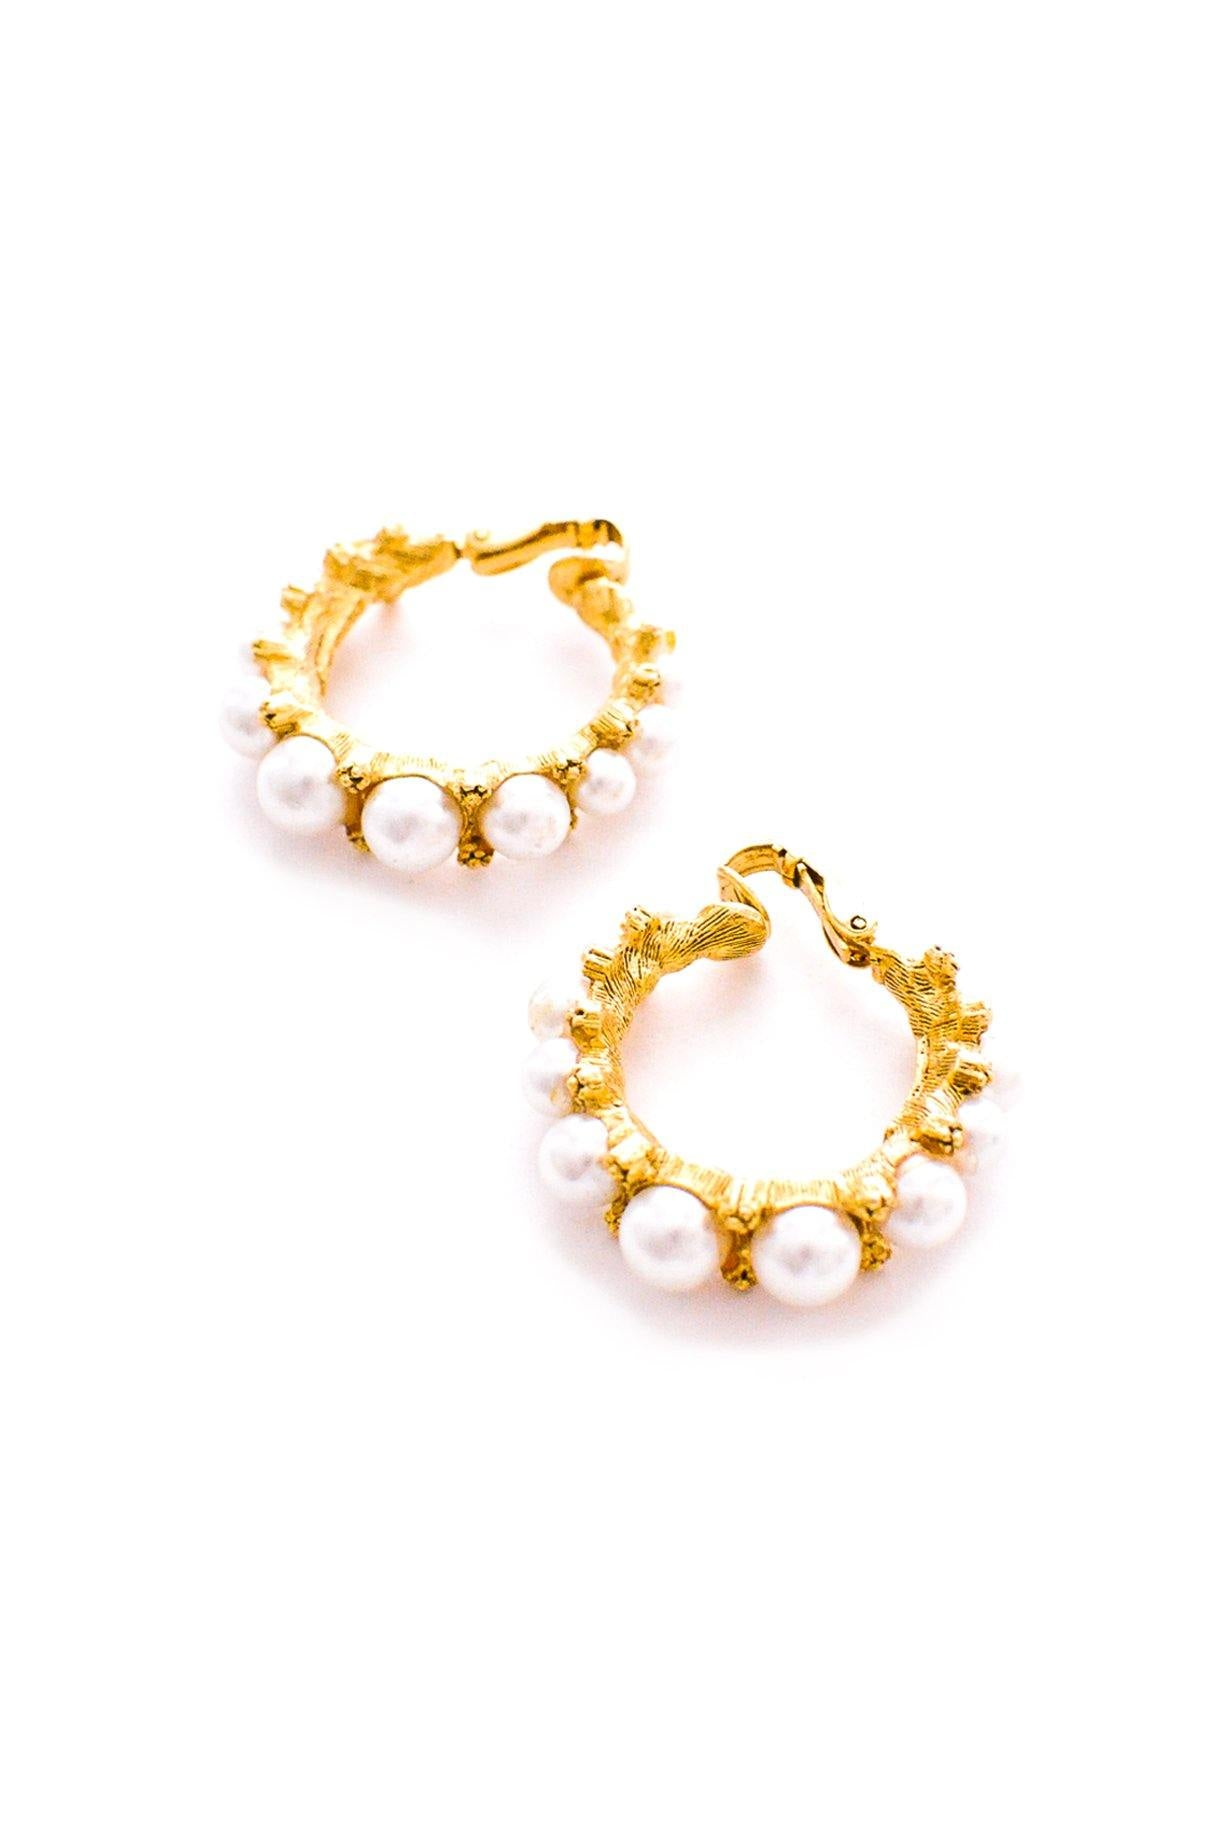 Vintage Florenza pearl hoop earrings from Sweet & Spark.